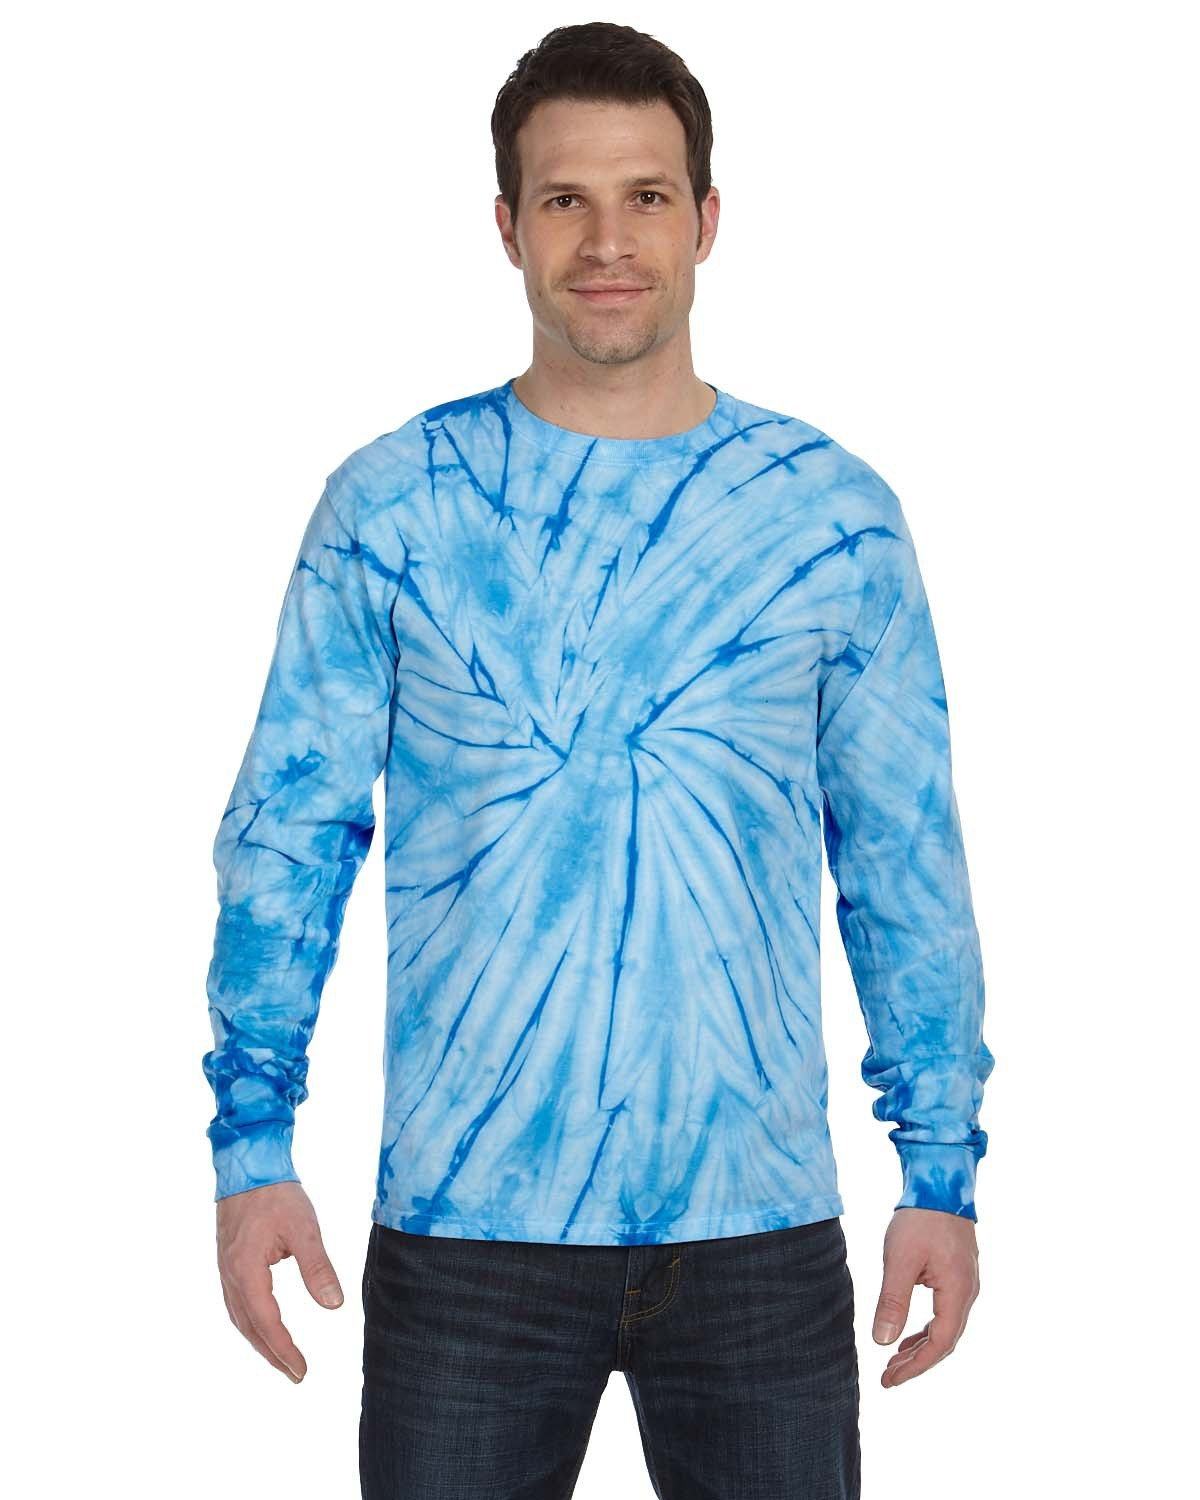 Tie-Dye Adult 5.4 oz. 100% Cotton Long-Sleeve T-Shirt SPIDER BABY BLUE